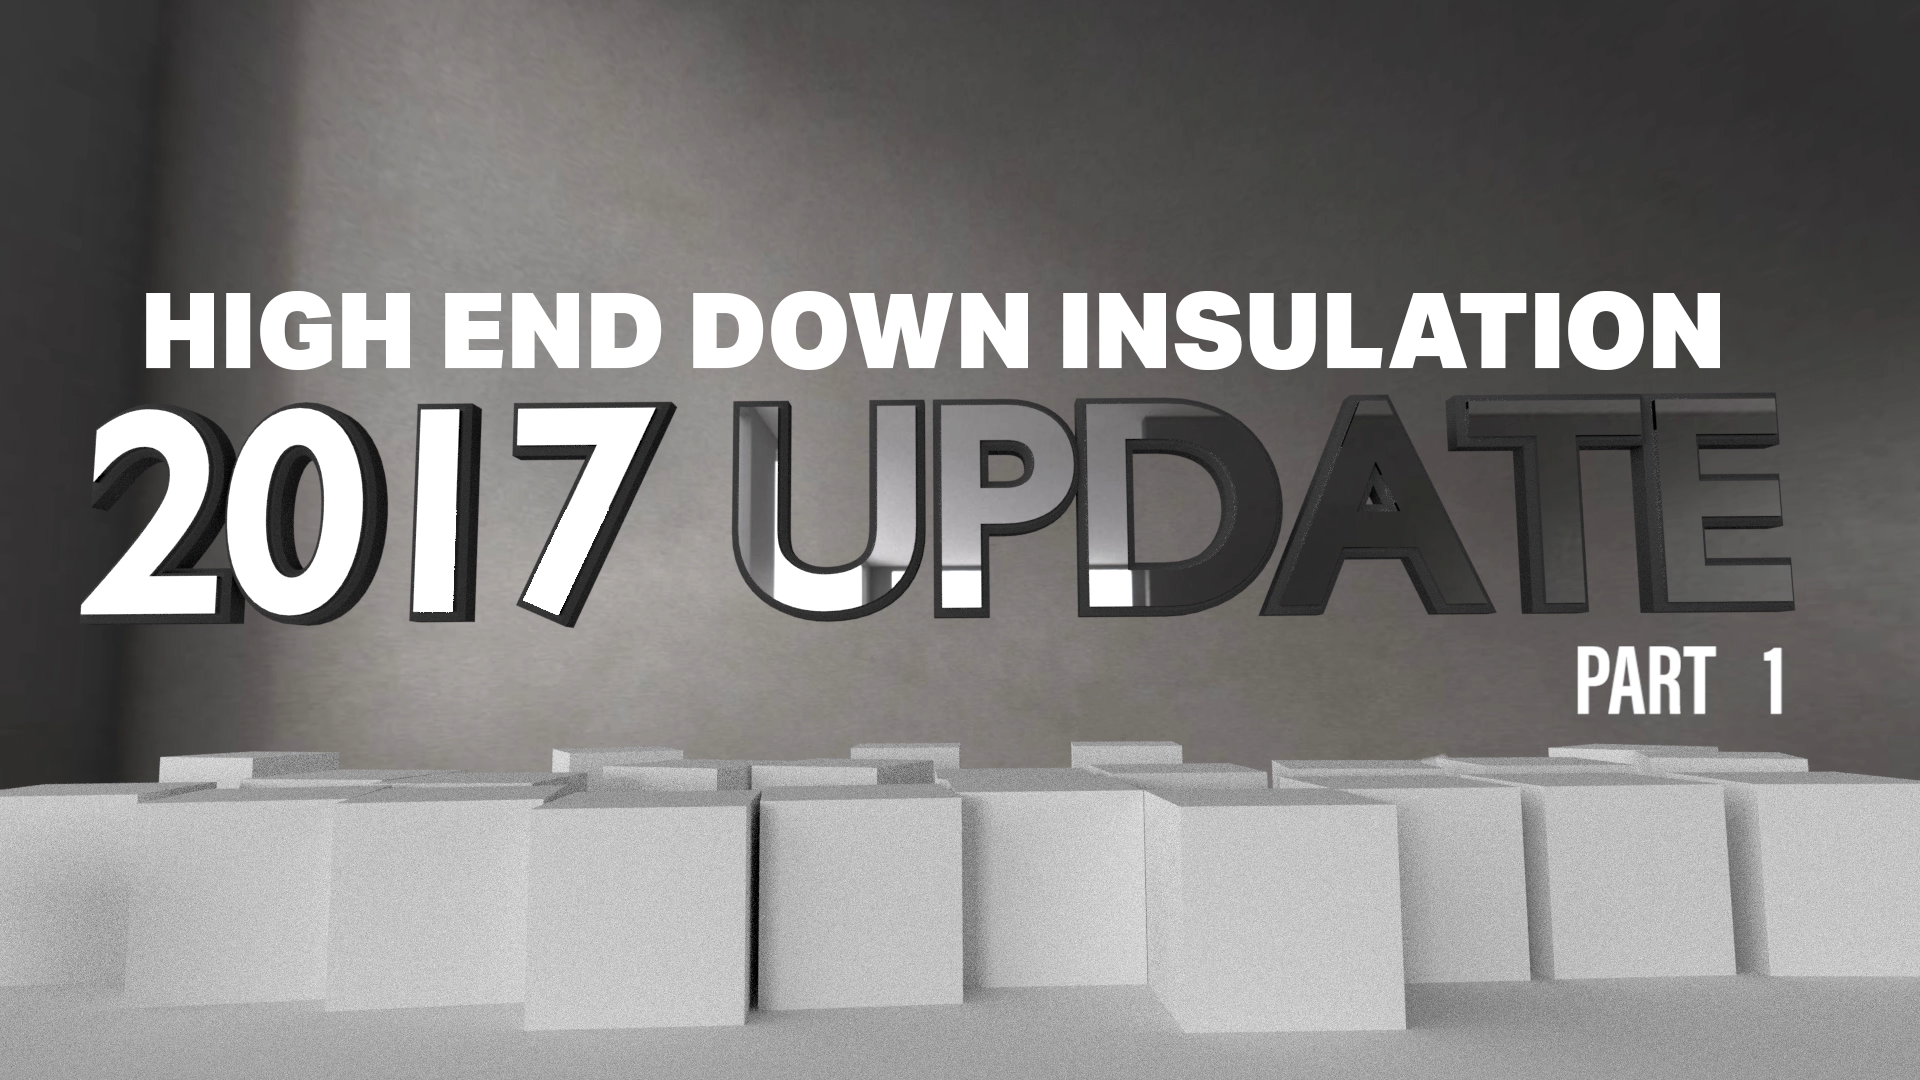 HIGH END DOWN INSULATION - FALL 2017 PRODUCT UPDATES